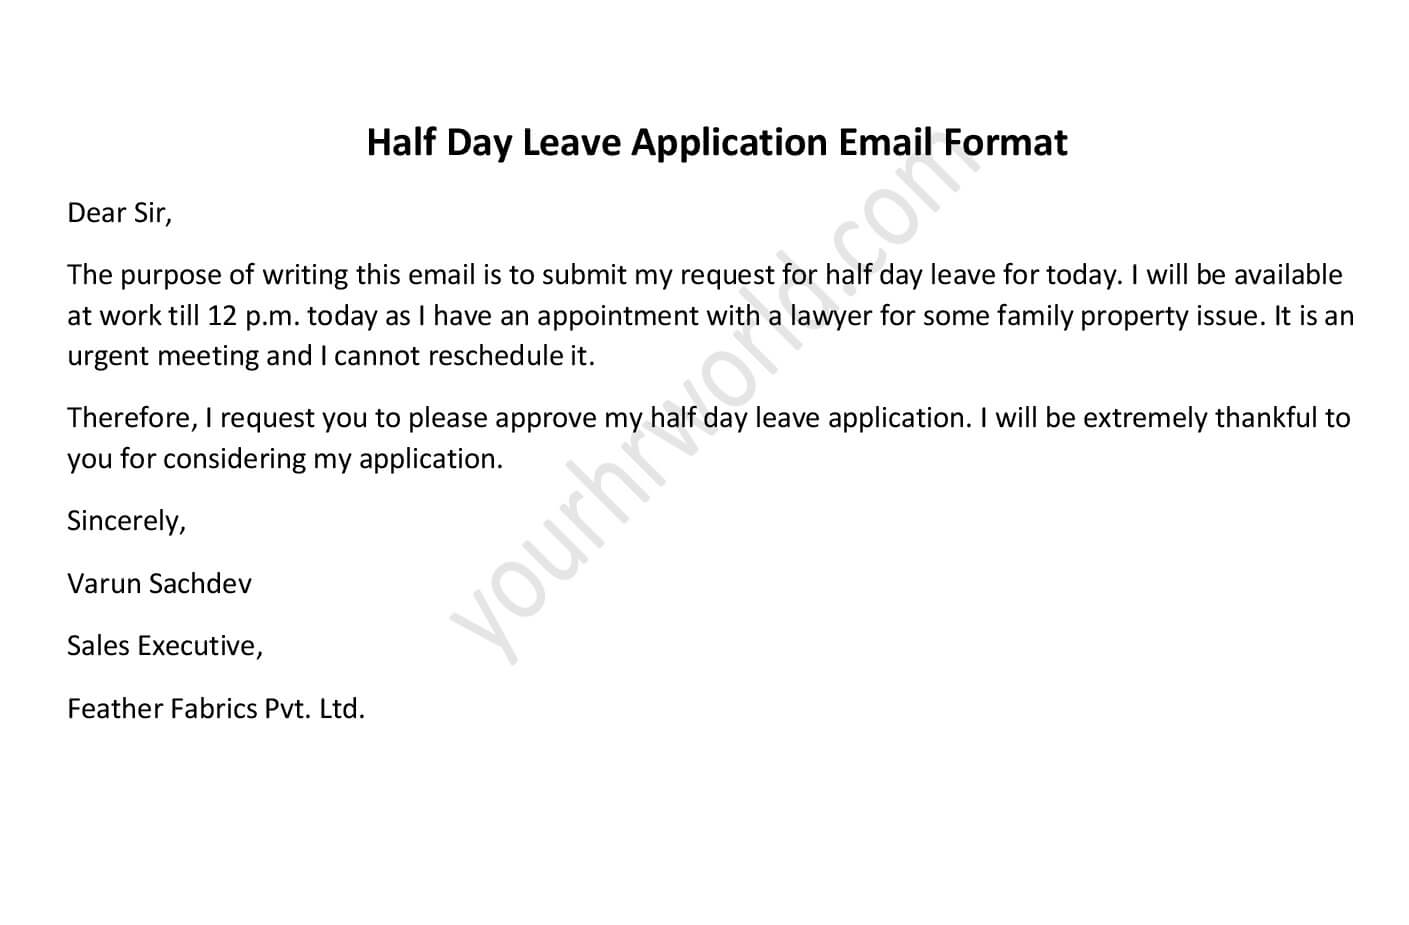 Easy format of half day leave application email easy format of half day leave application email altavistaventures Image collections